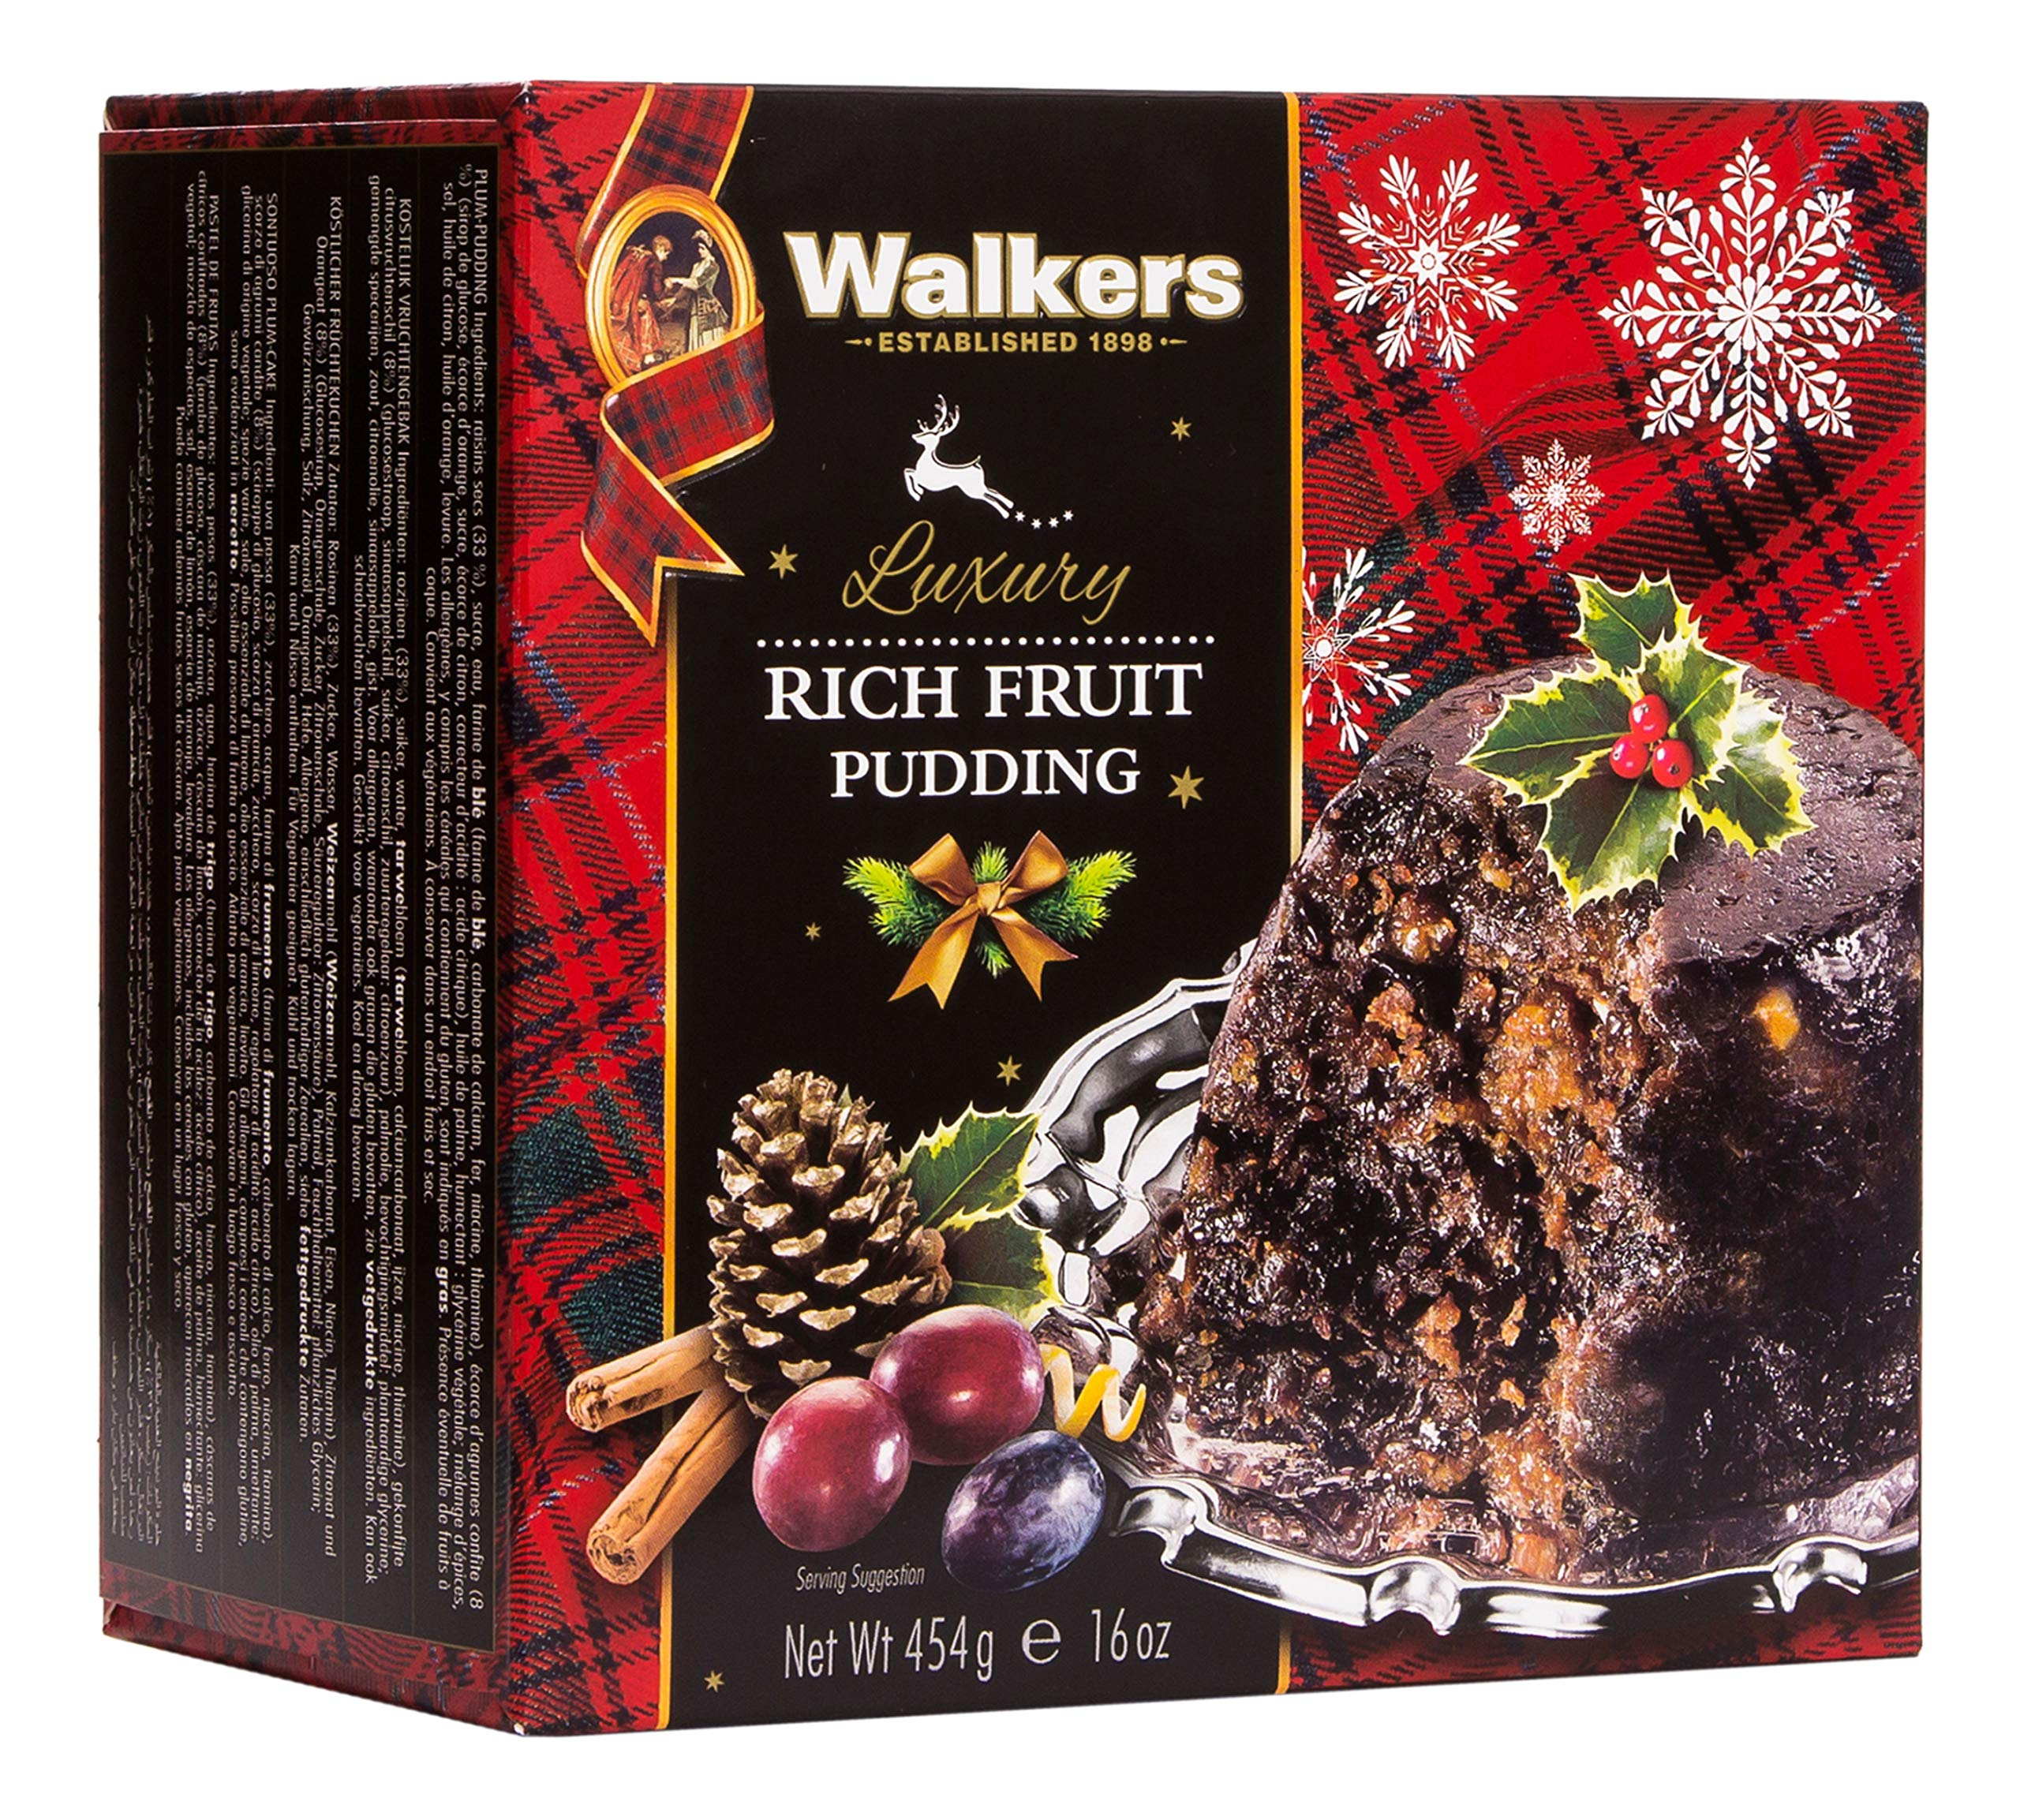 Walkers Shortbread Rich Fruit Pudding, 16-Ounce Box by Walkers Shortbread